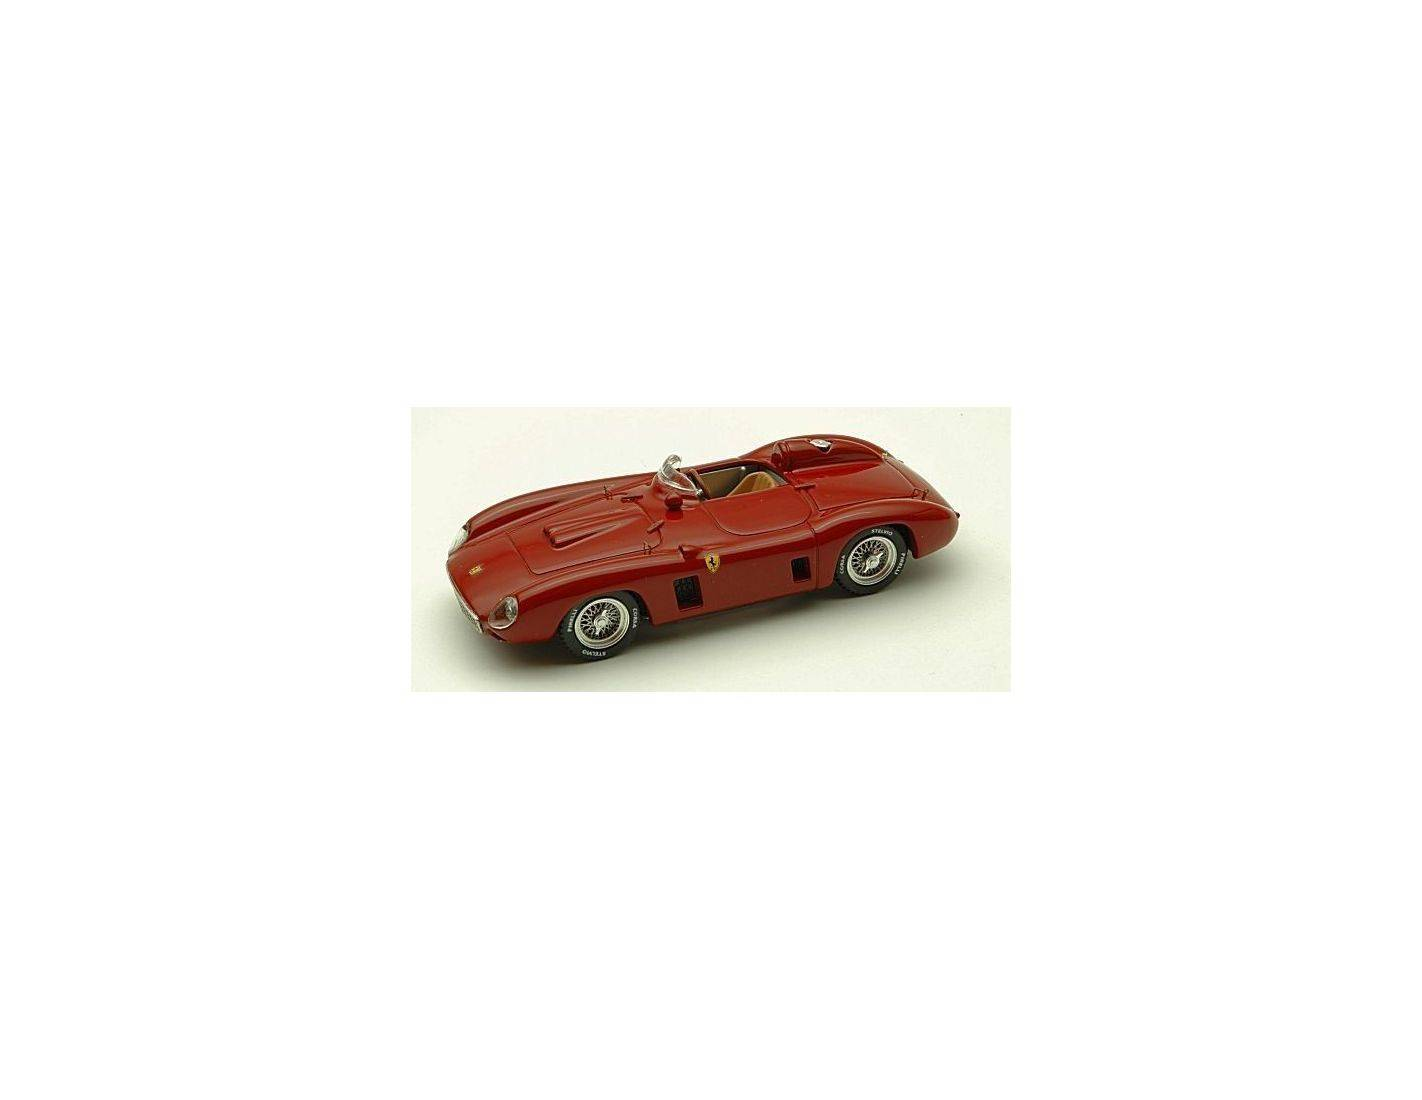 Art Model AM0173 FERRARI 860 MONZA 1956 PROVA RED 1:43 Modellino